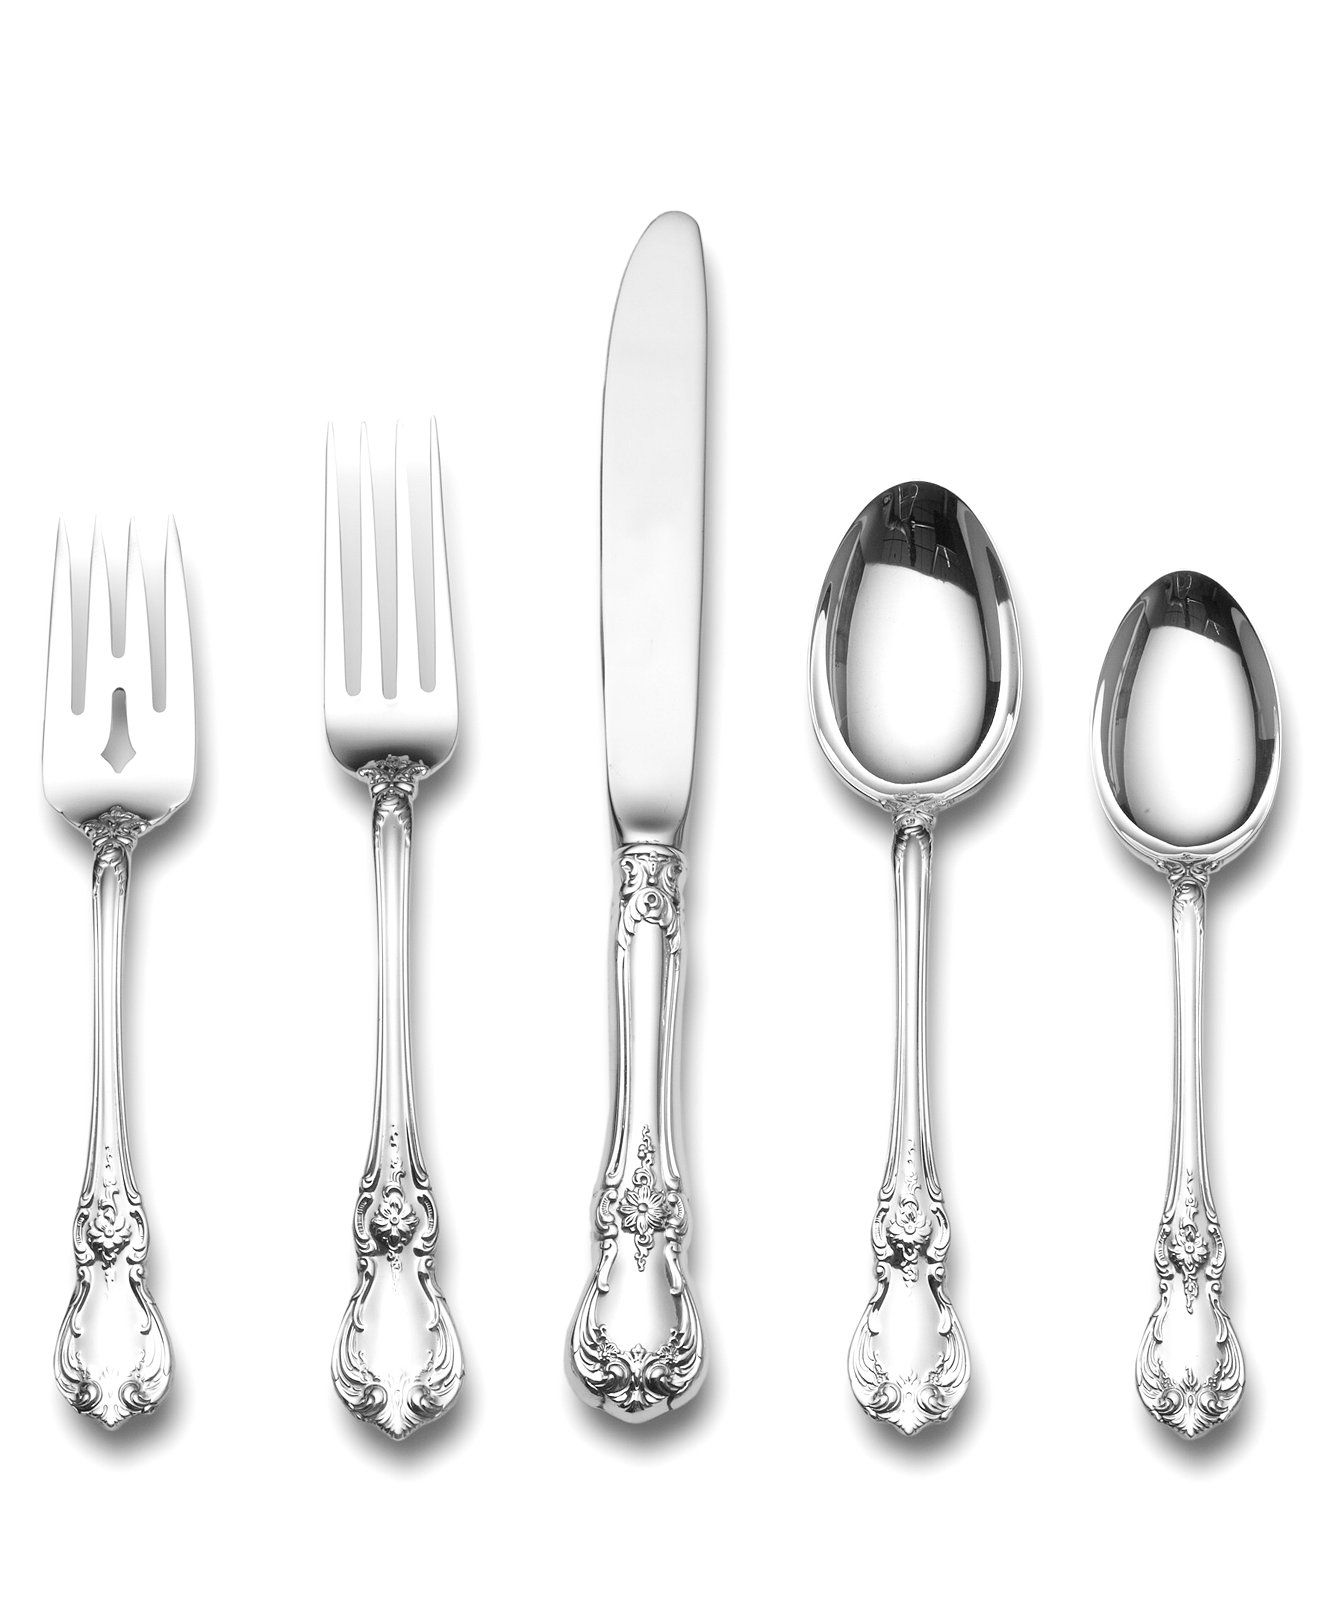 Towle Old Master Sterling Silver 5 Piece Place Setting